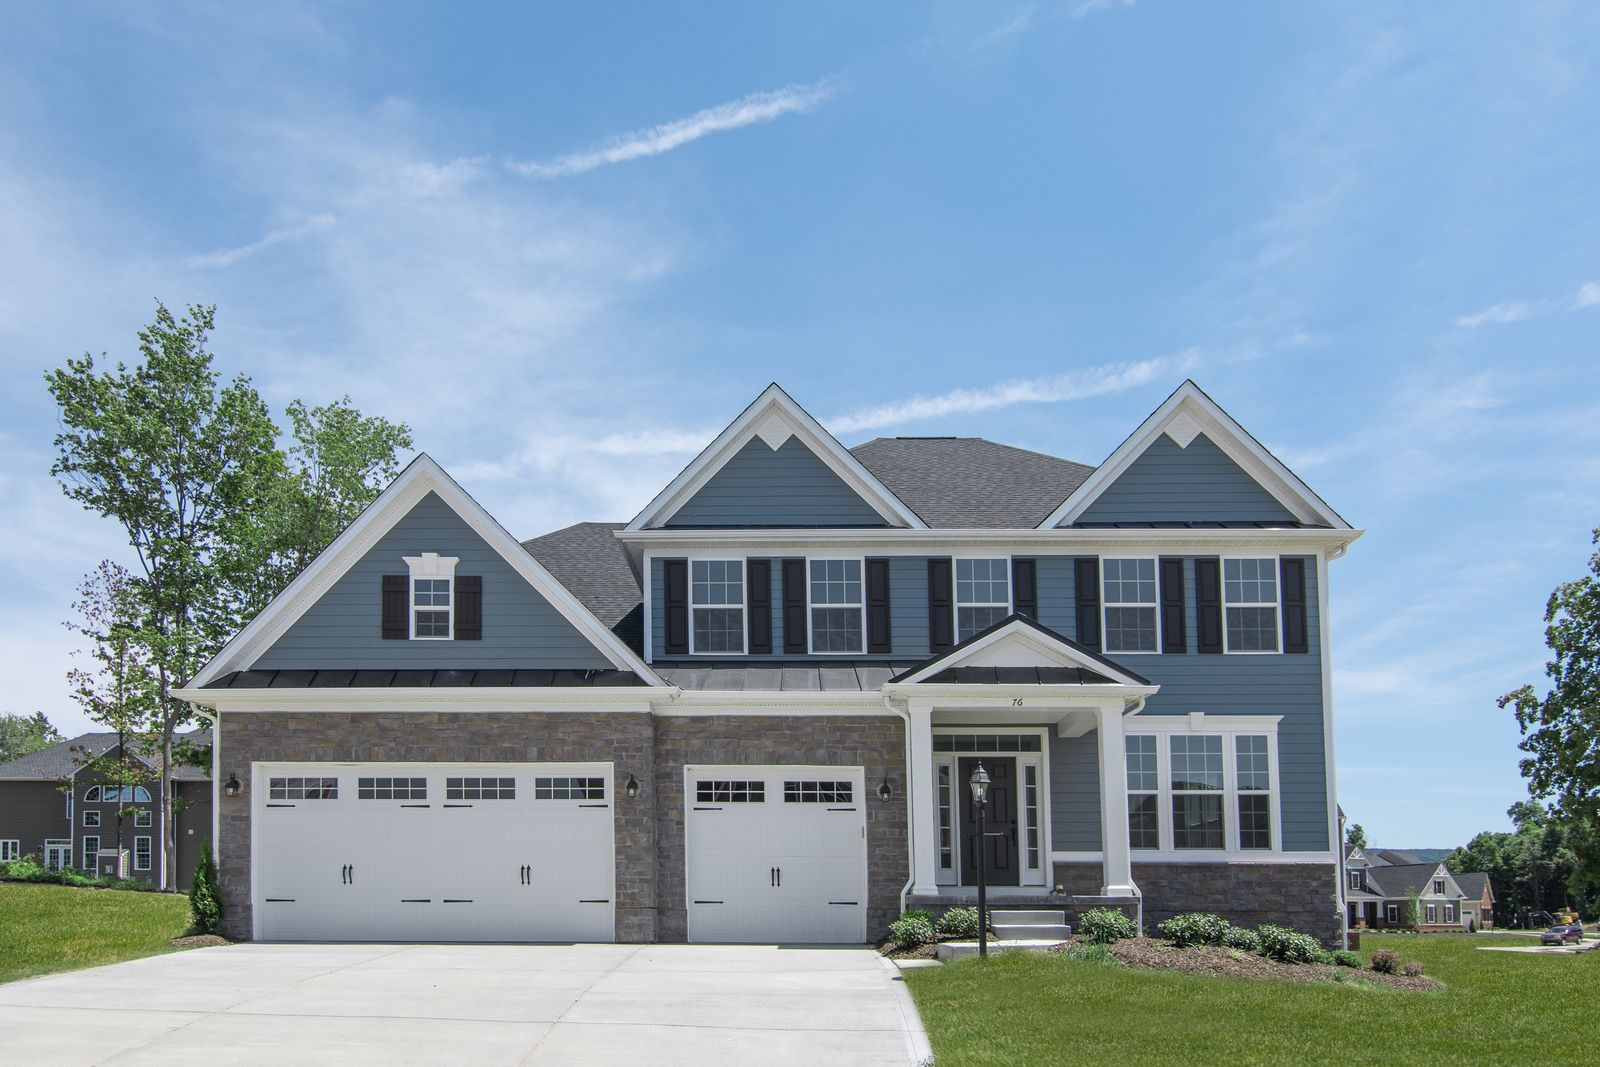 Welcome Home to Juniper Woods:Only 32 new luxury homes in Peters Township with top-ranked schools, minutes to I-79, Rt. 19, parks, shopping, dining, and golf.Click here to join the VIP List.